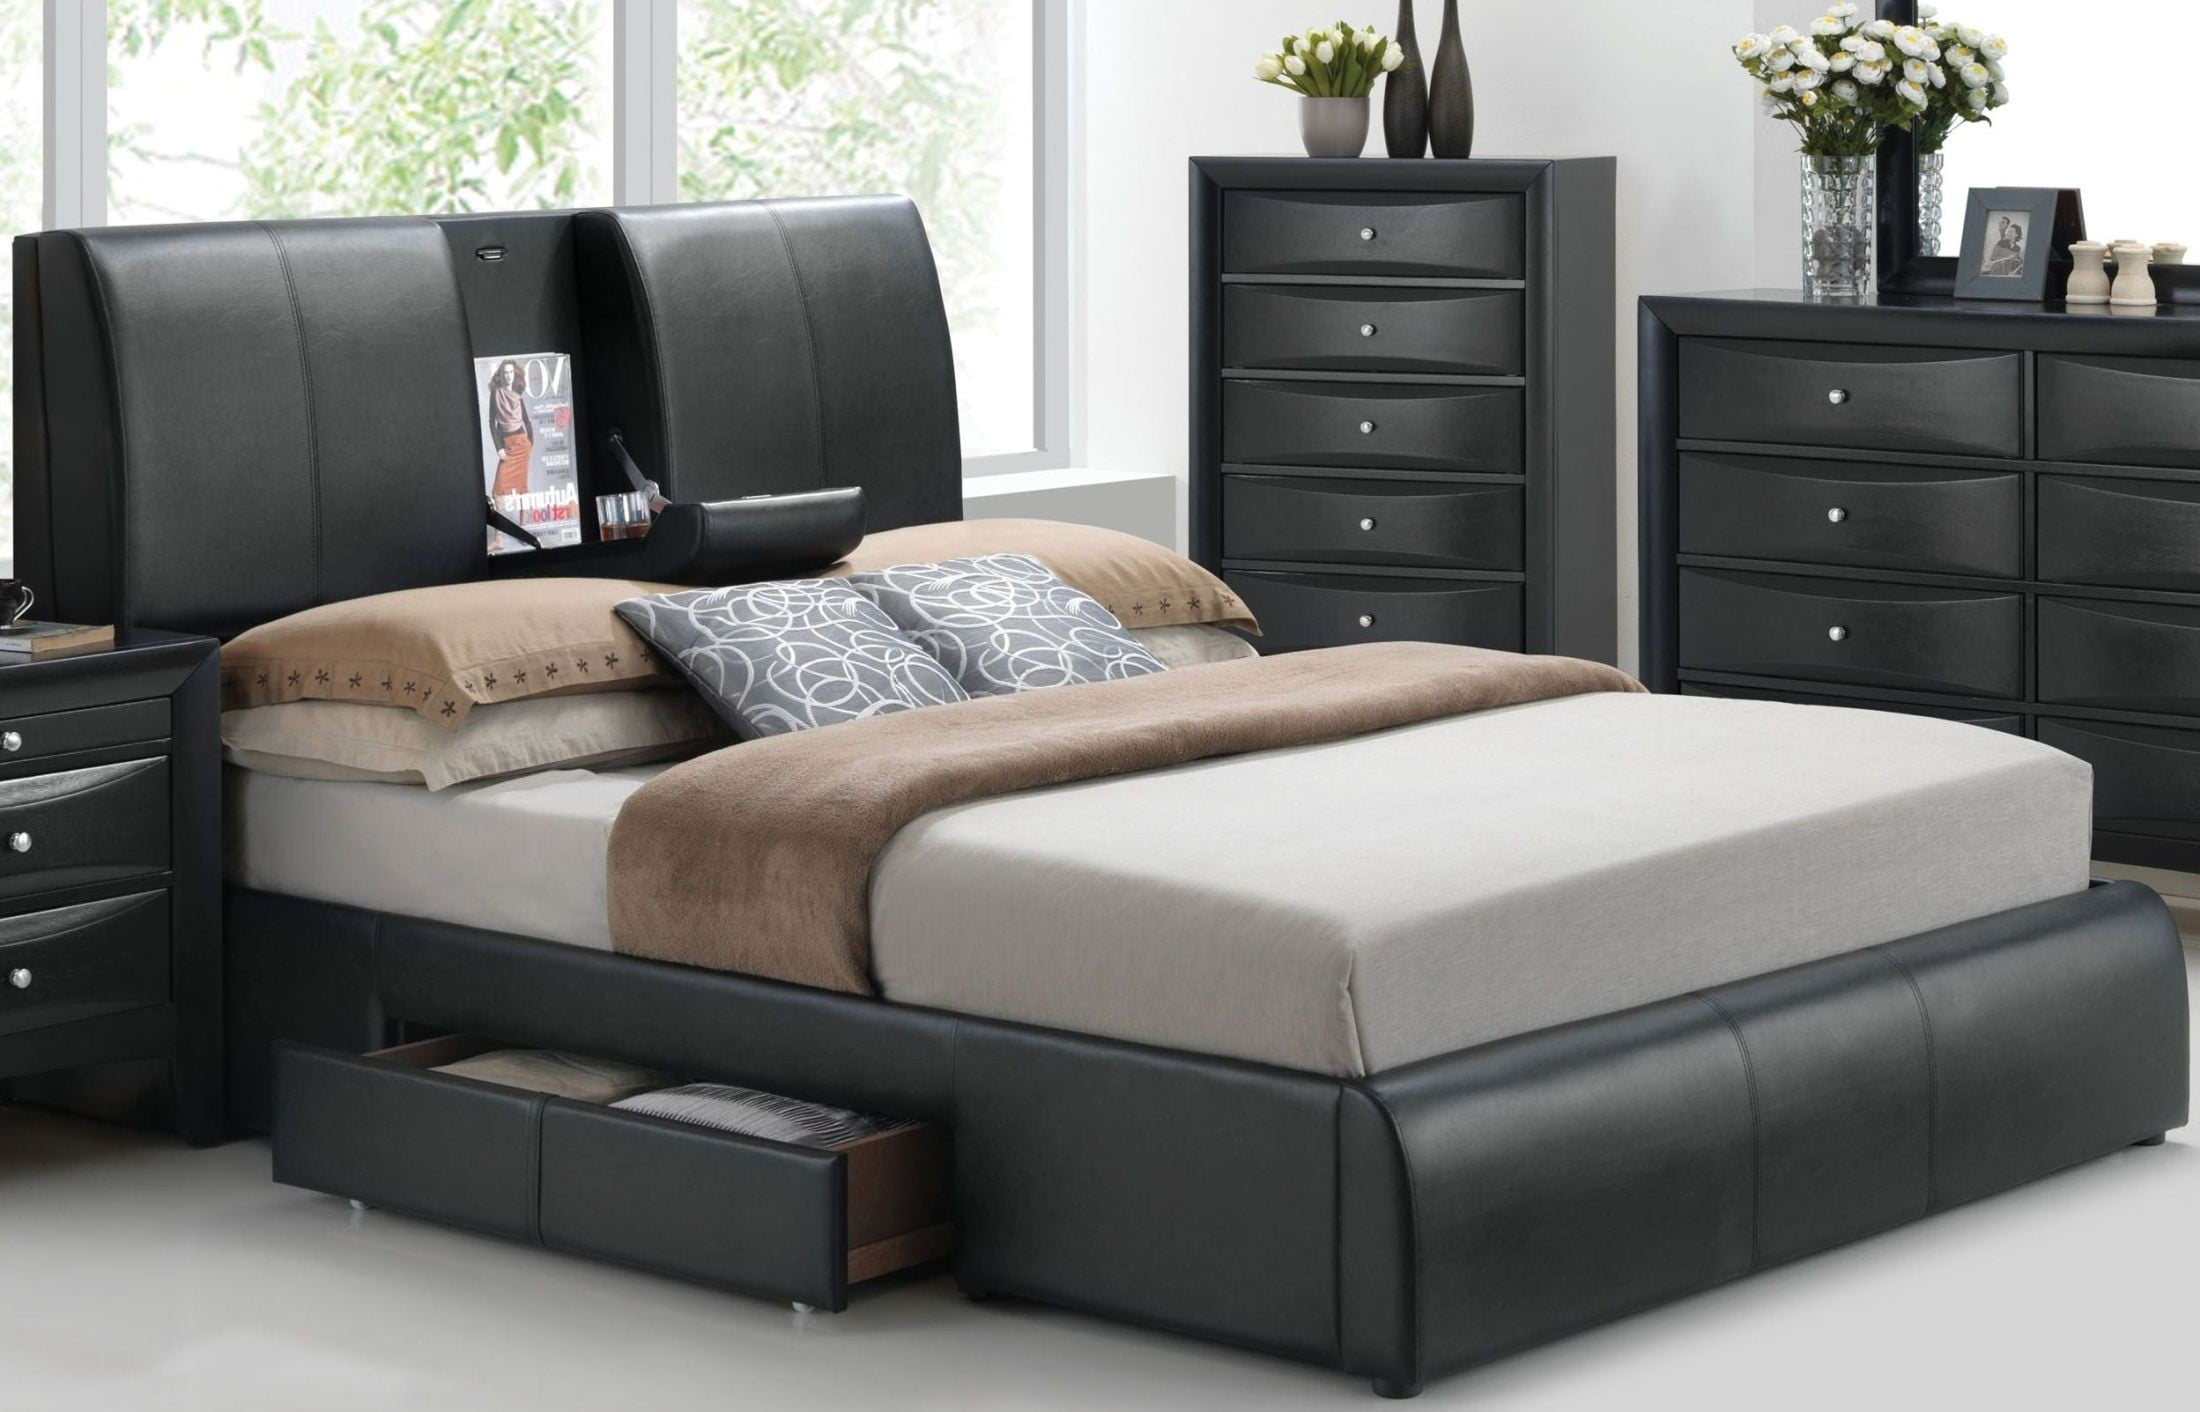 Contemporary Bedroom Set London Black By Acme Furniture: Kofi Black Queen Upholstered Platform Storage Bed From